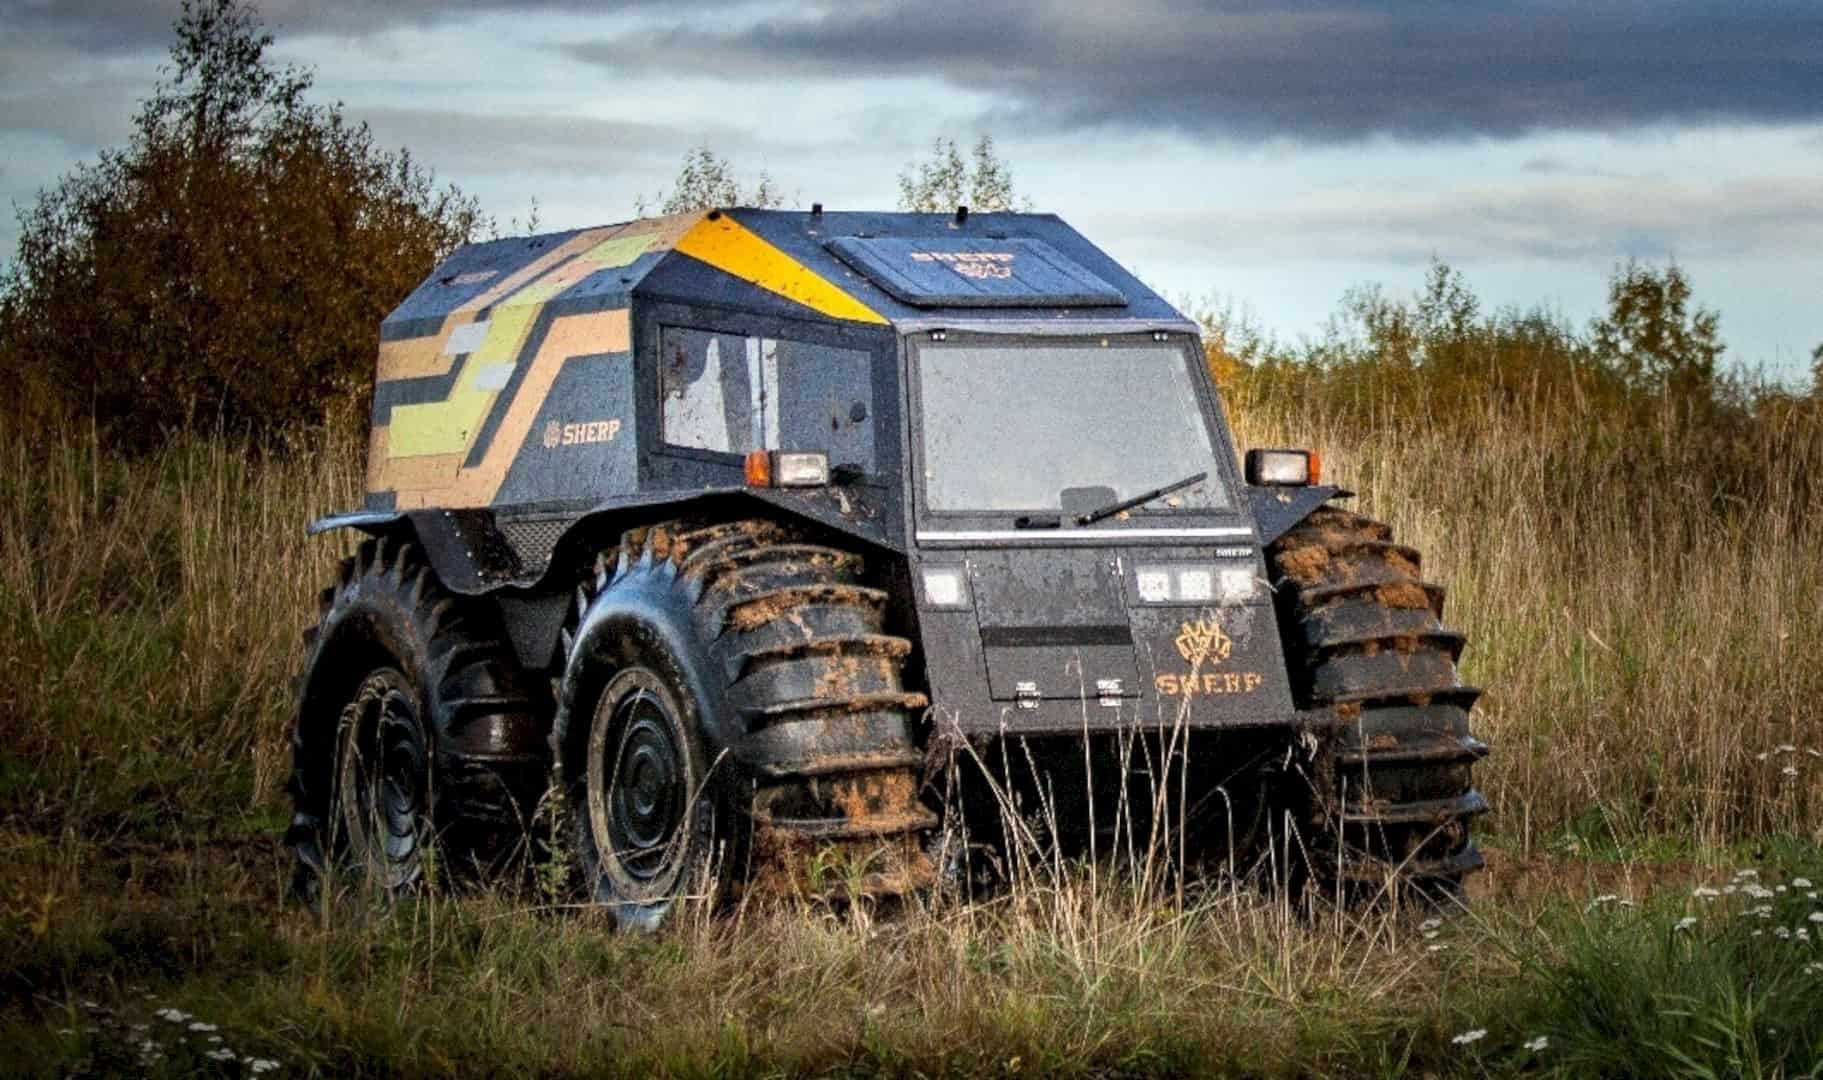 SHERP Ultimate ATV 3